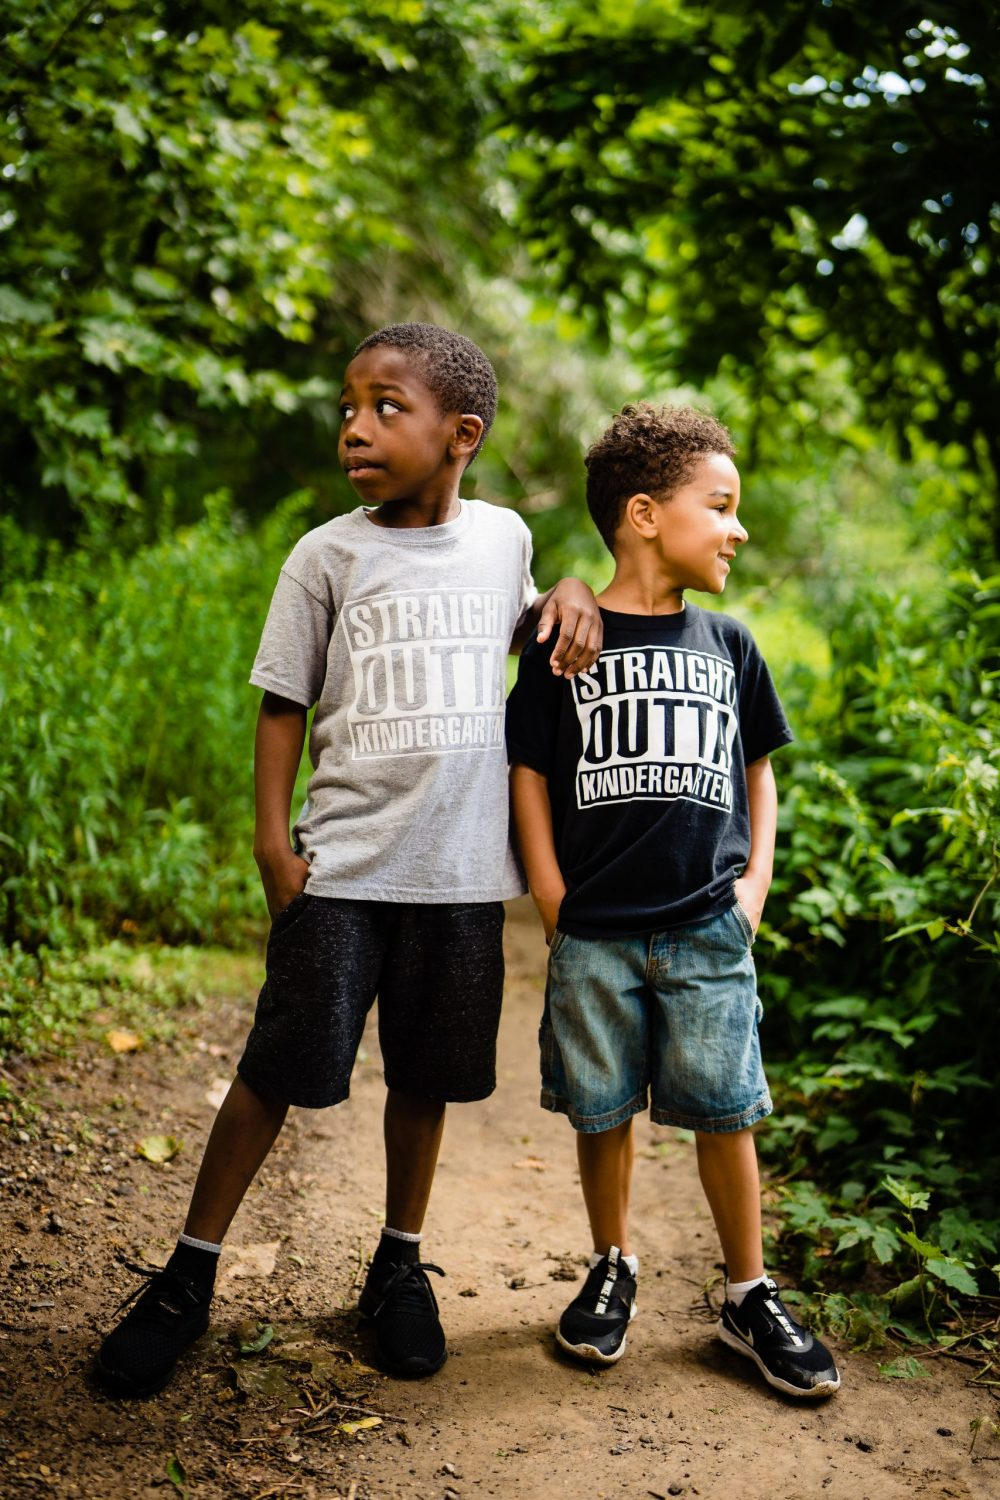 2 young boys in custom shirts